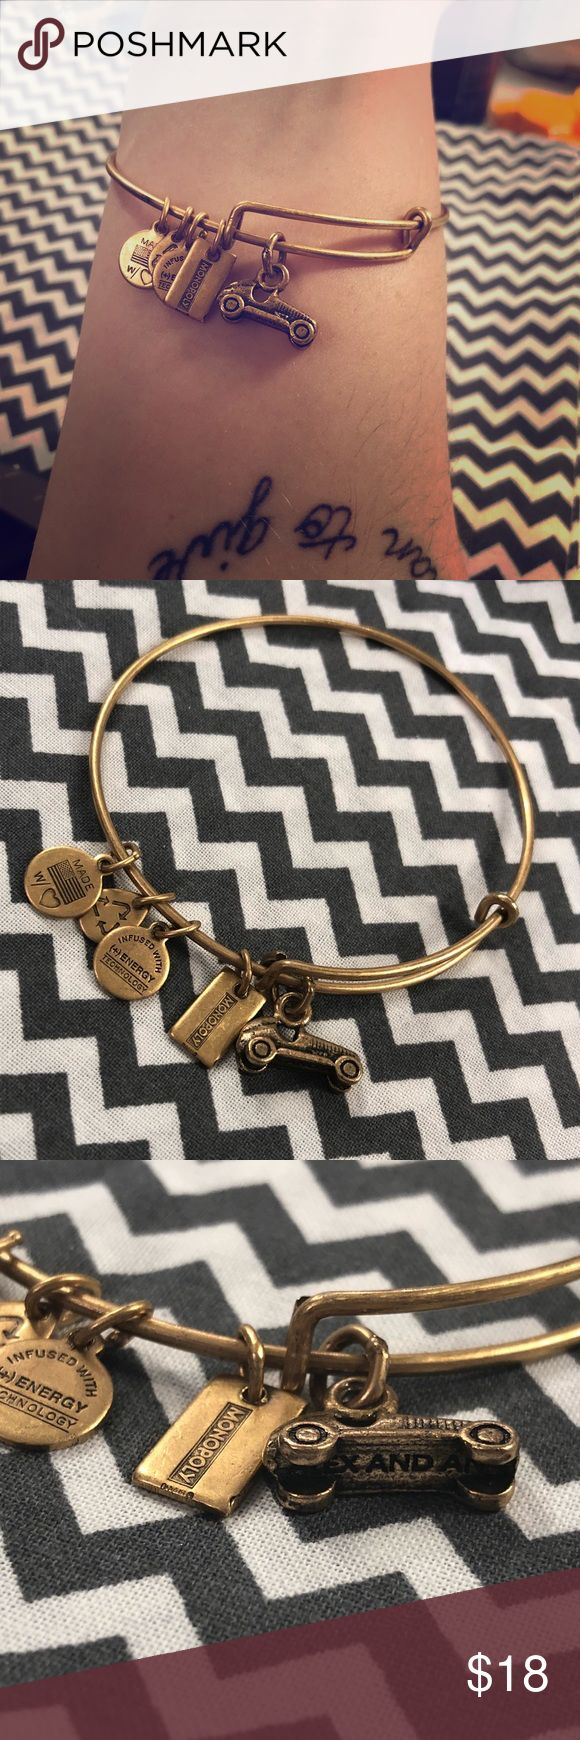 Alex & Ani gold tone Hasbro Monopoly car bangle NWOT Alex & Ani special edition Hasbro Monopoly line bangle bracelet with Monopoly car. Alex and Ani engraved on the bottom. Some tarnish from sitting in my jewelry box, but it just adds to the typical naturally antiqued look of gold toned A&A pieces. Alex and Ani Jewelry Bracelets